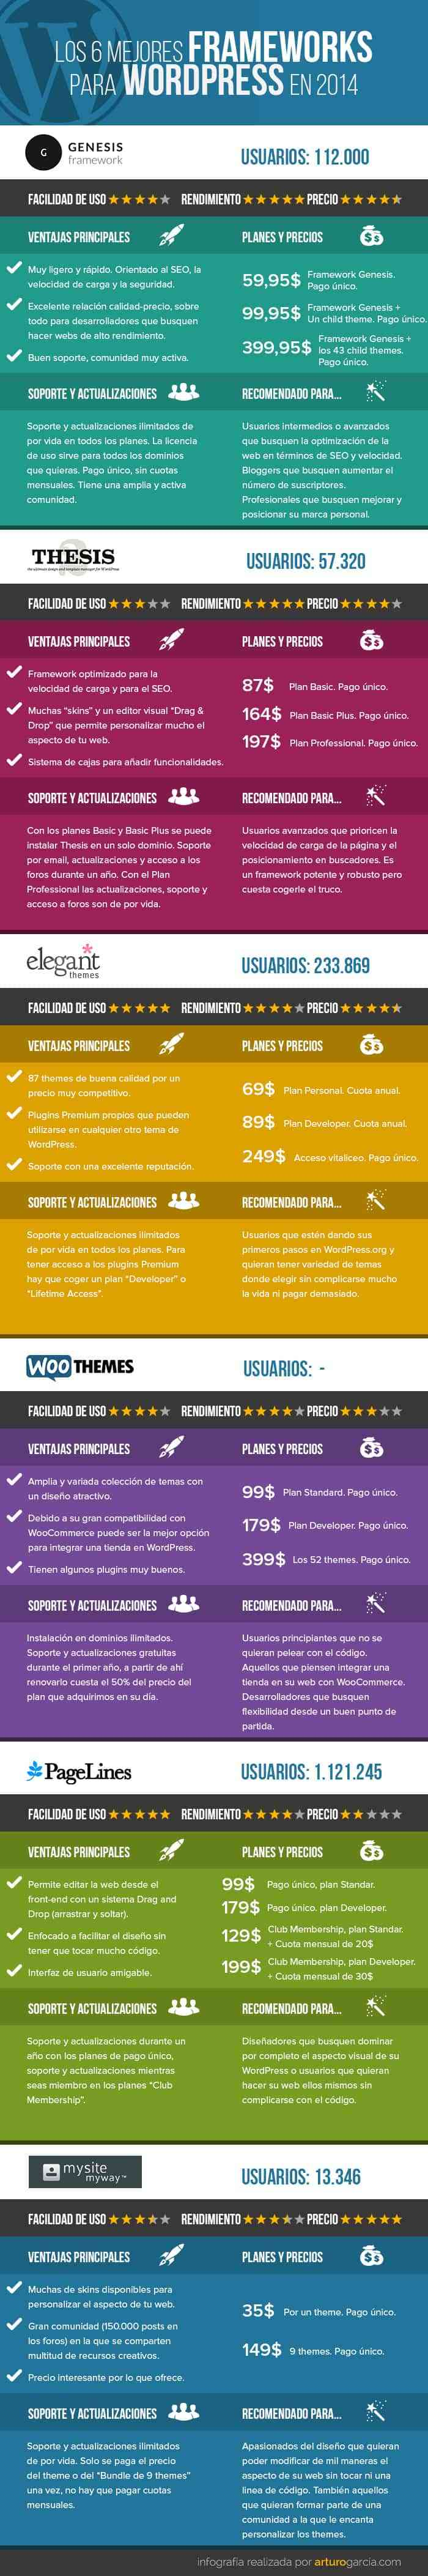 comparativa frameworks para wordpress